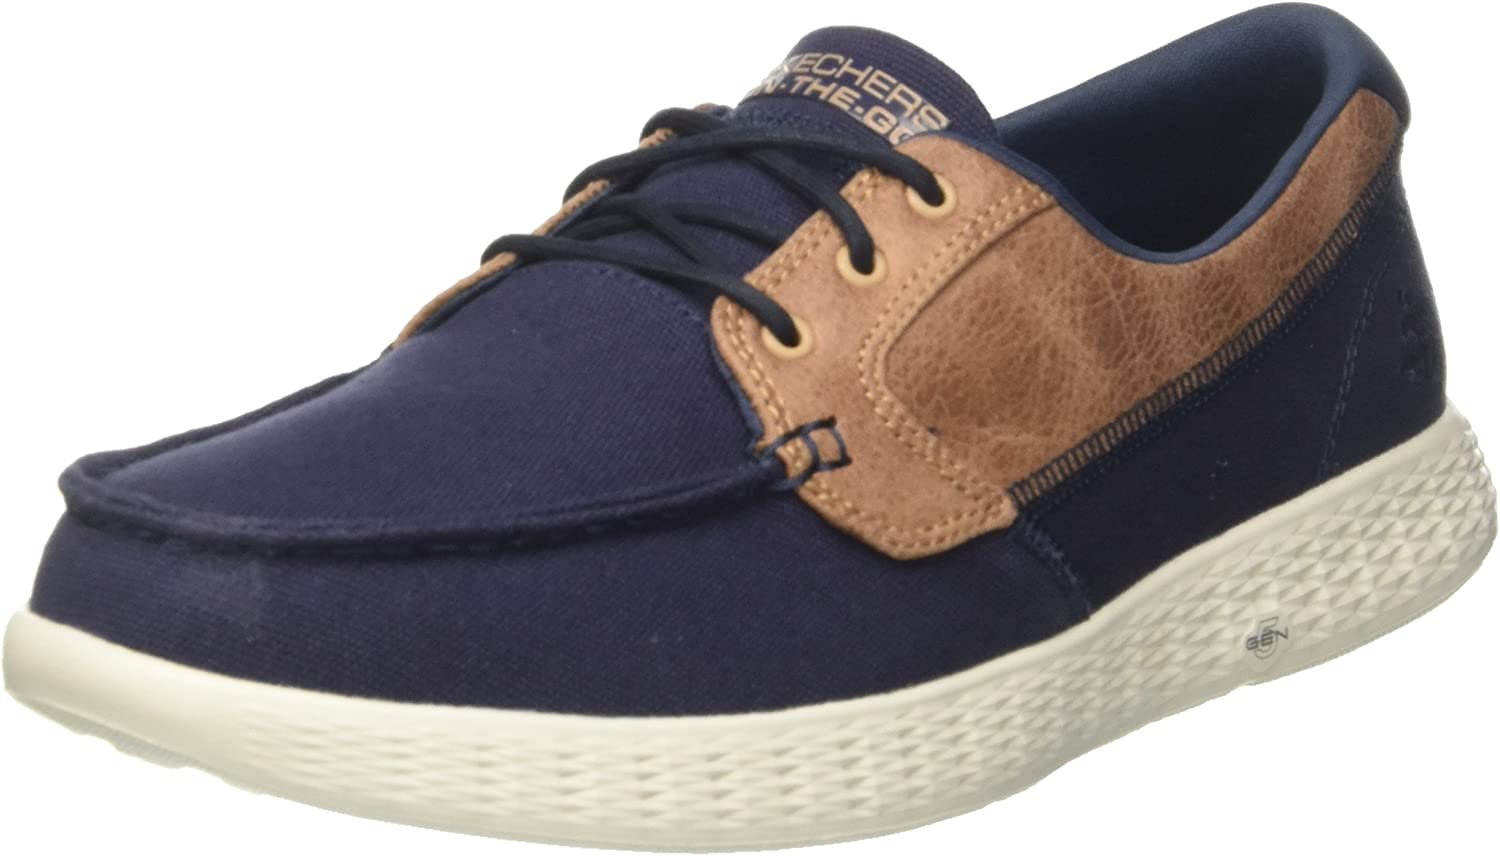 Skechers Men's Performance, On The Go Glide High Seas Lace up shoes